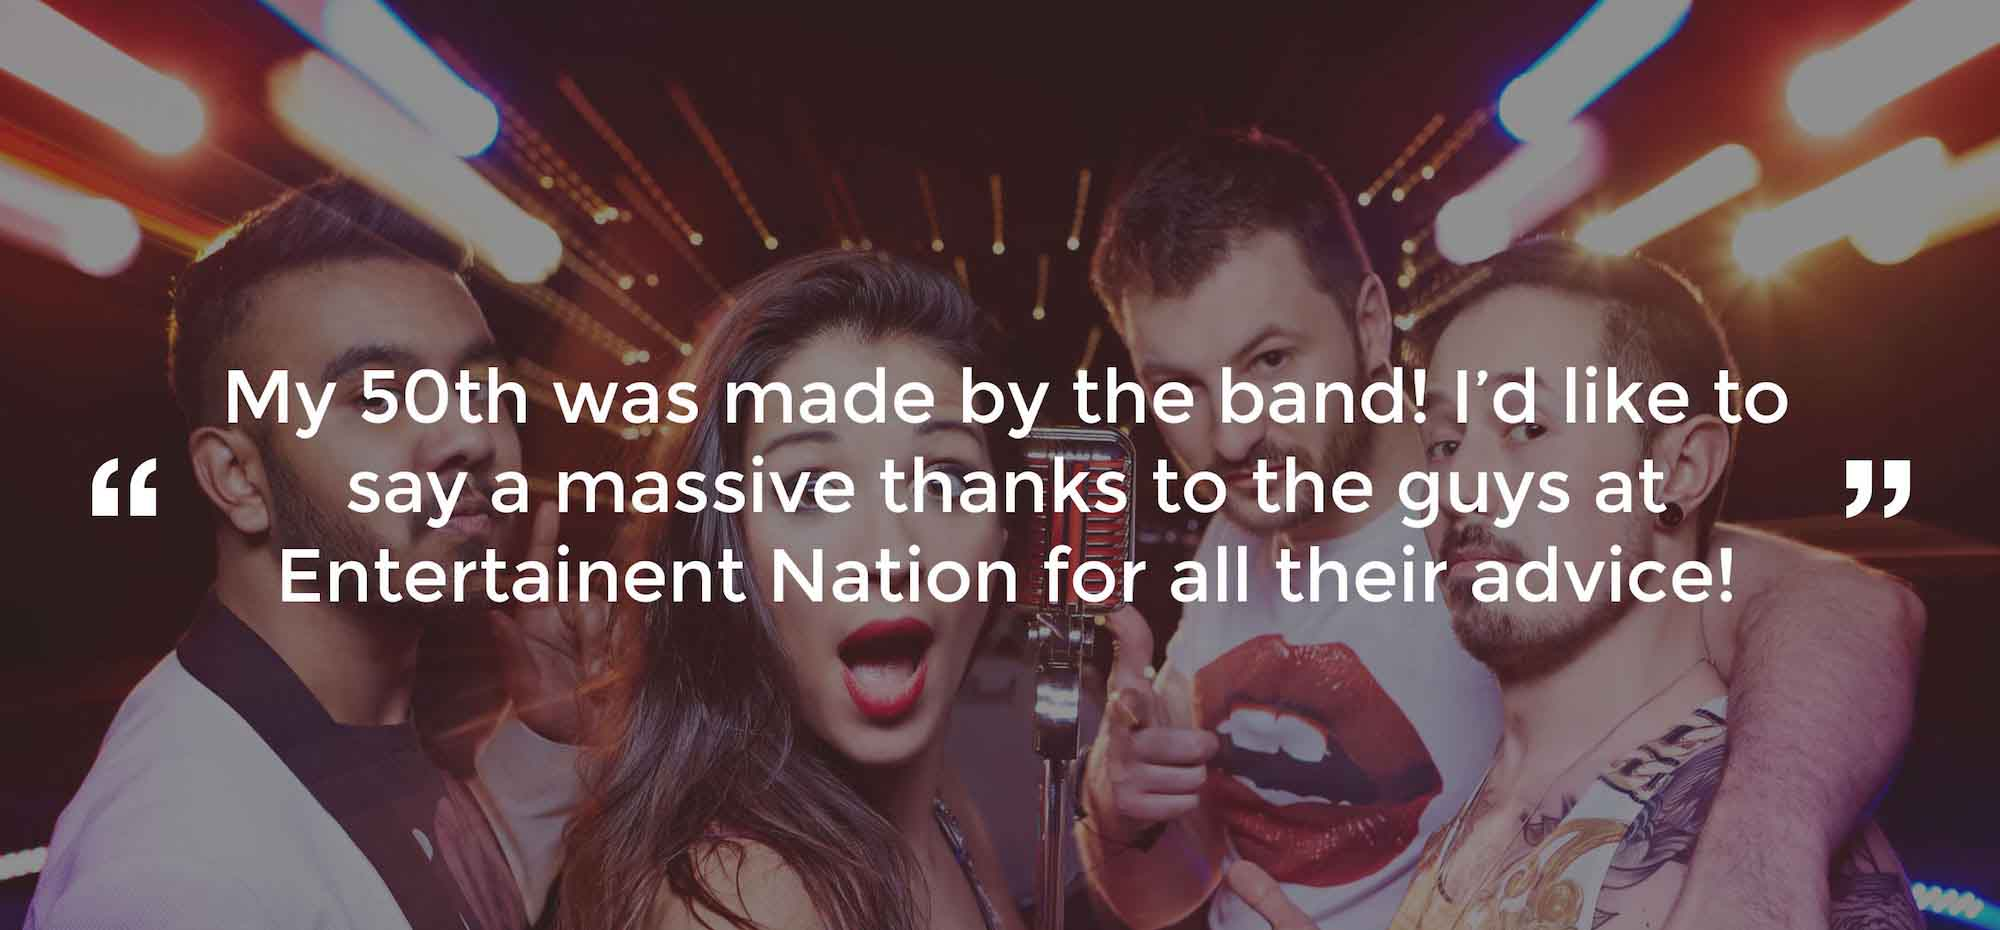 Client Review of a Party Band Wrexham